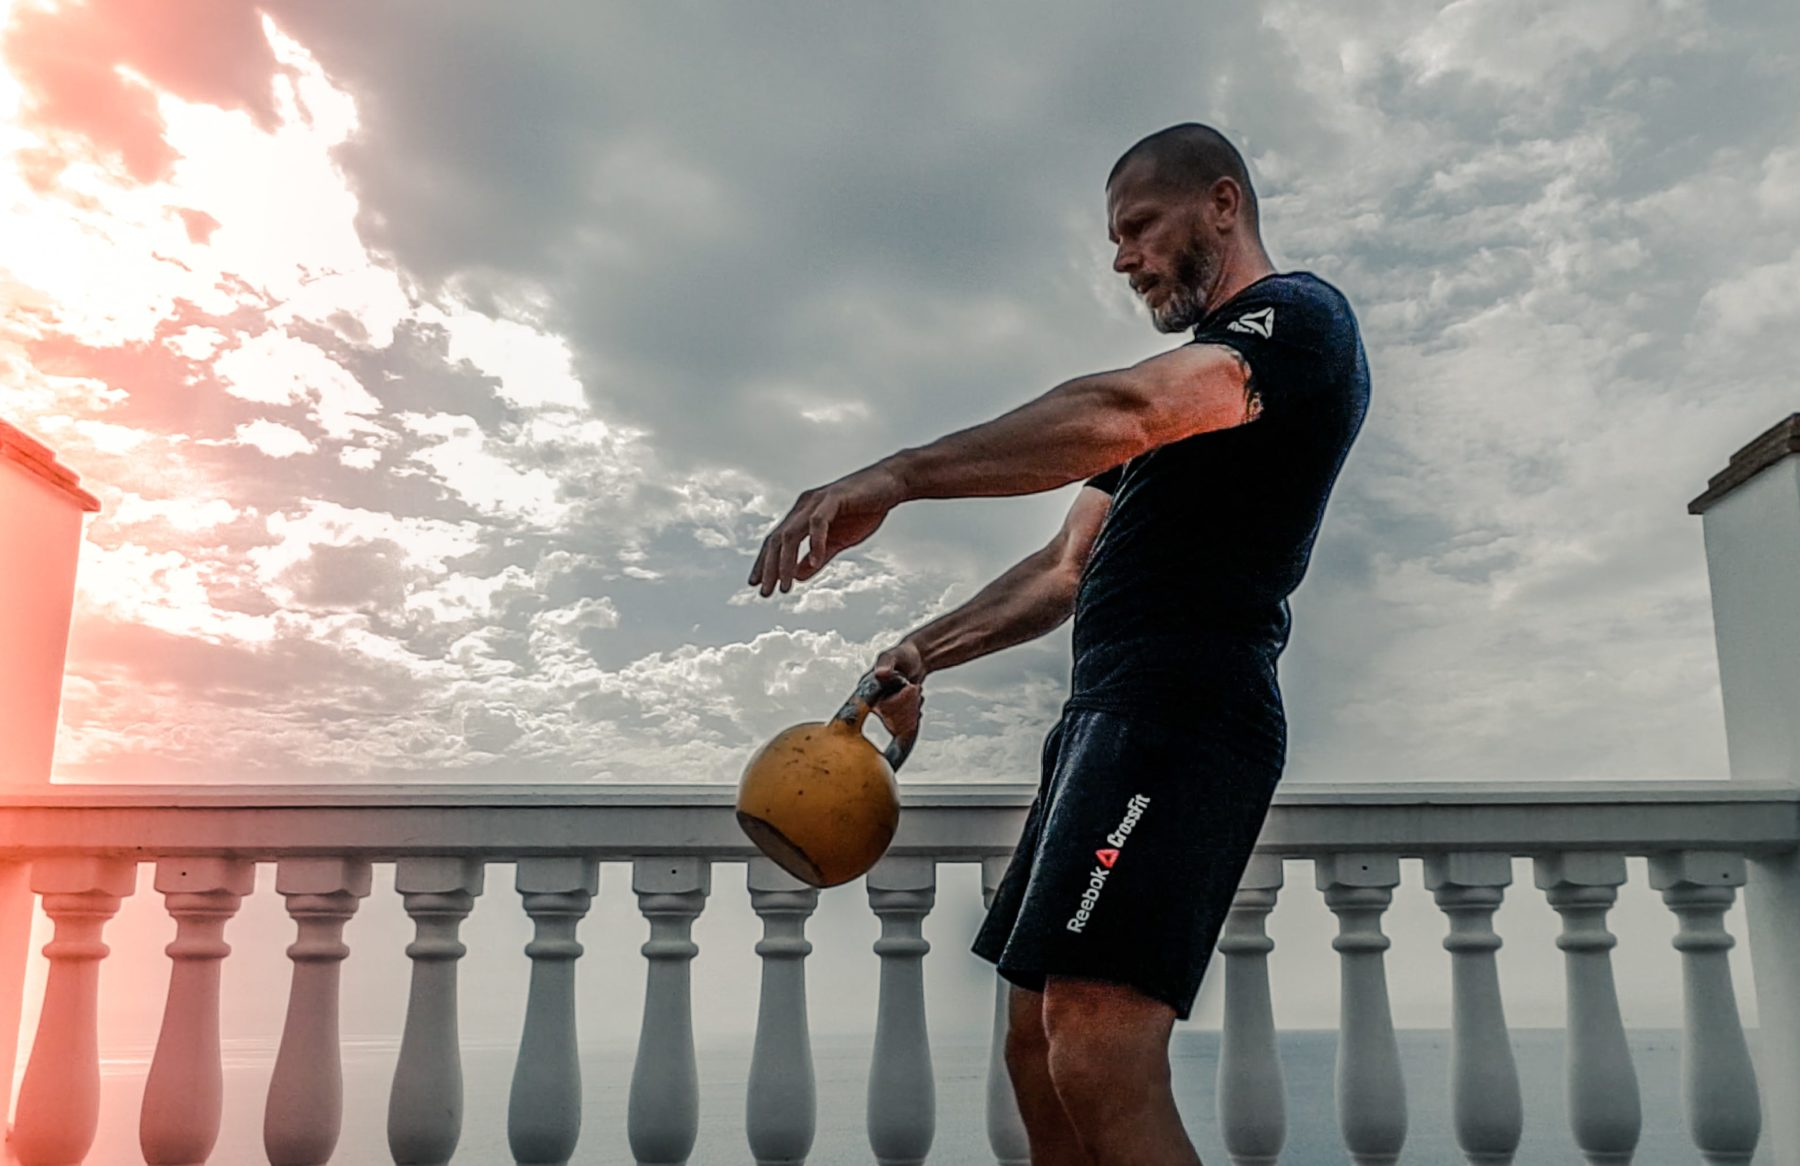 Top 3 Reasons To Train Kettlebell Swings